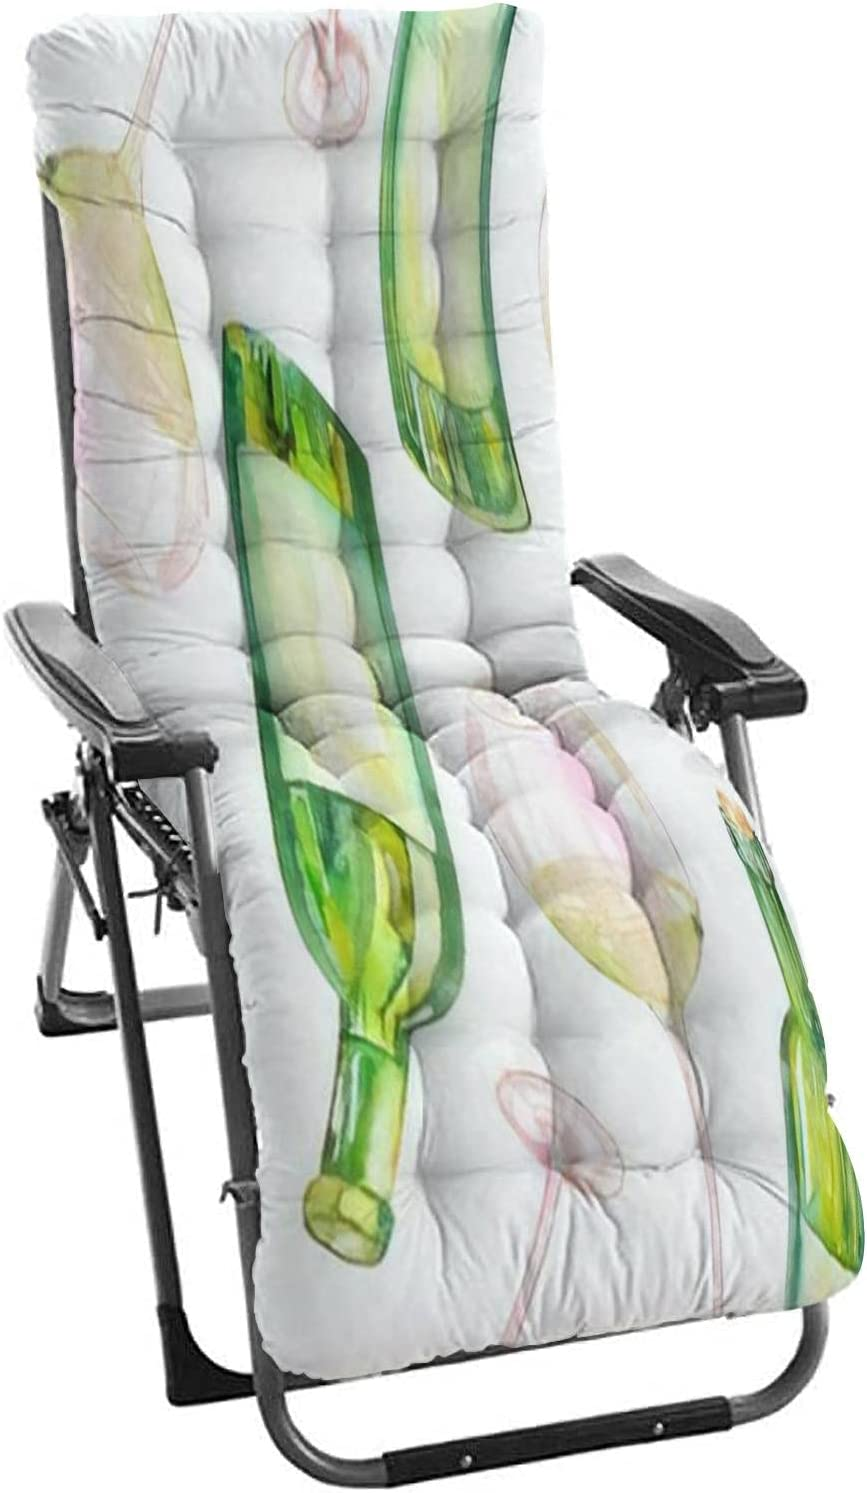 Outlet ☆ Free Shipping Sun Loungers Cushions Max 86% OFF Zero Gravity A Cushion Seamless Chairs Pat